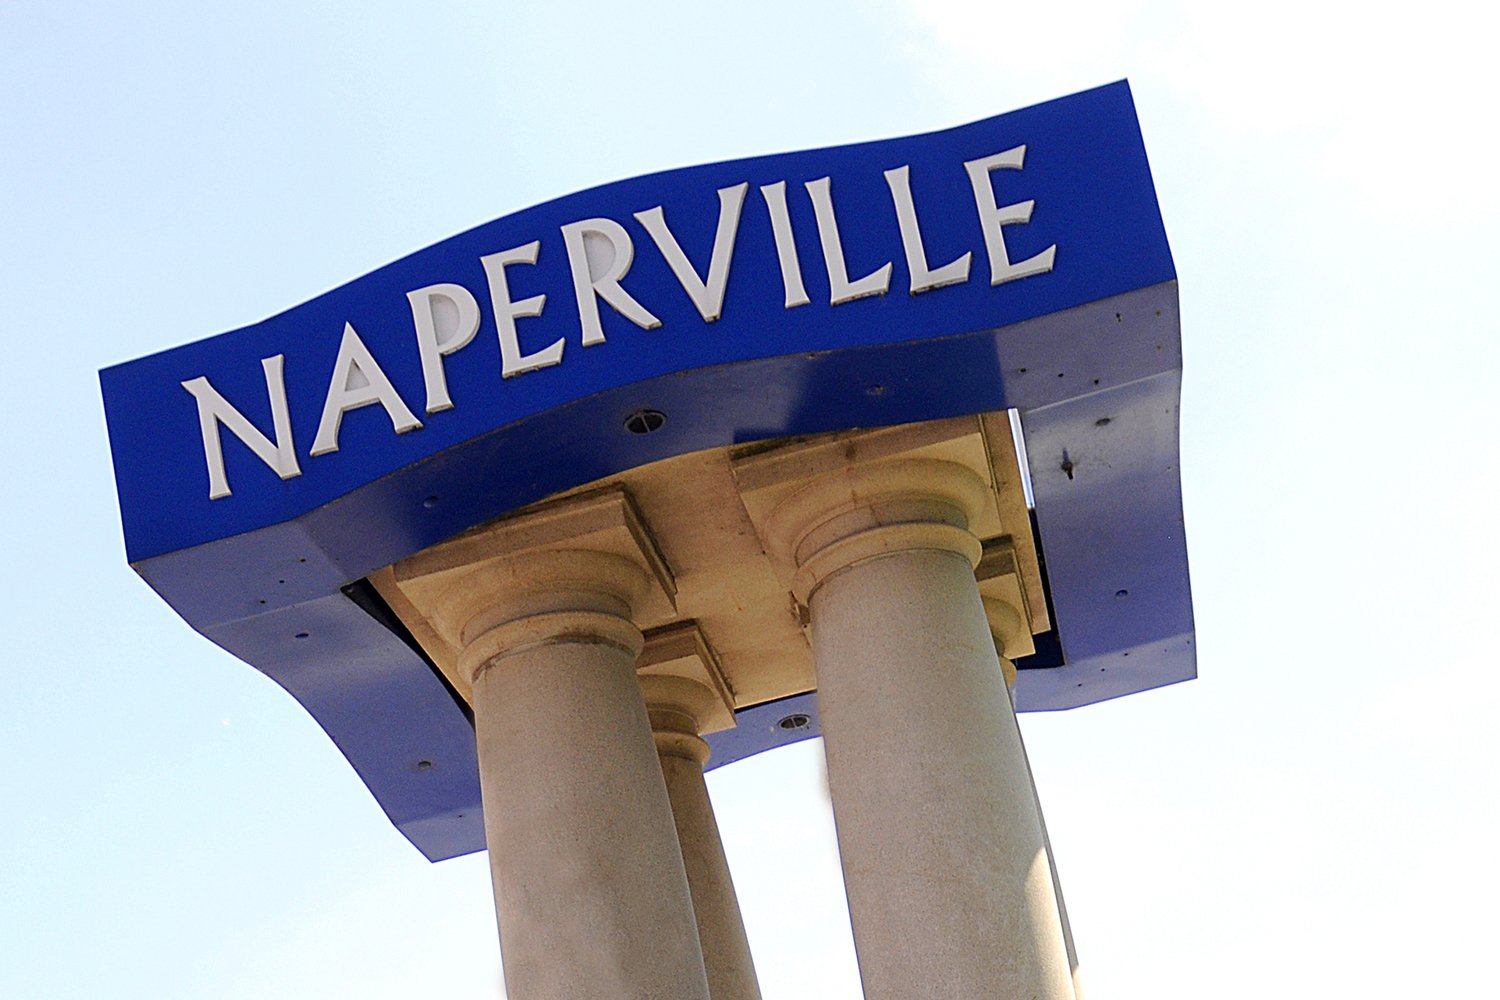 Naperville sign horizontal